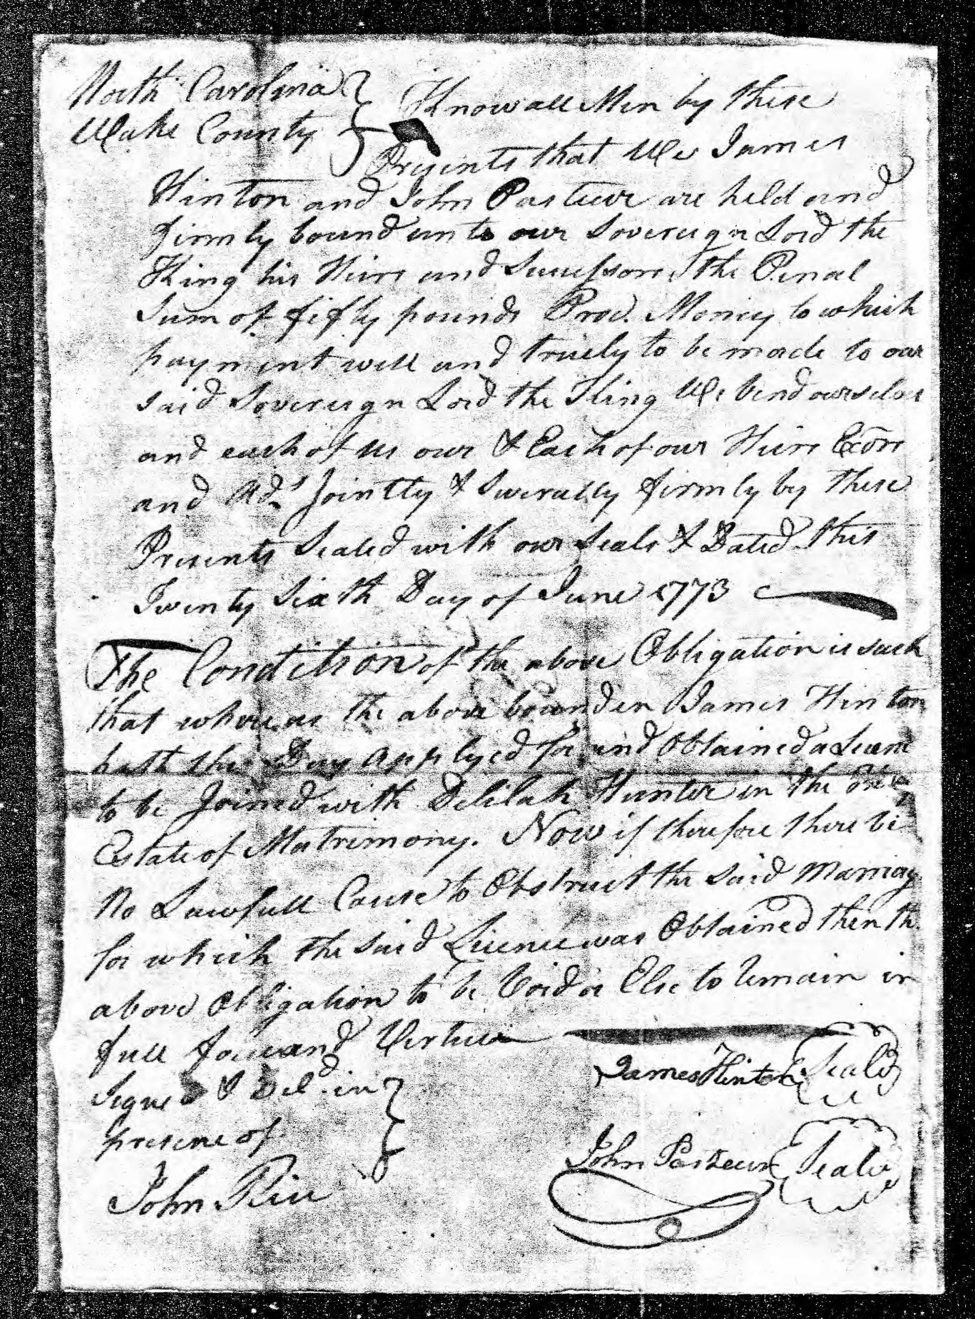 The marriage bond dated 6 June 1773 between Delilah Hunter and James Hinton